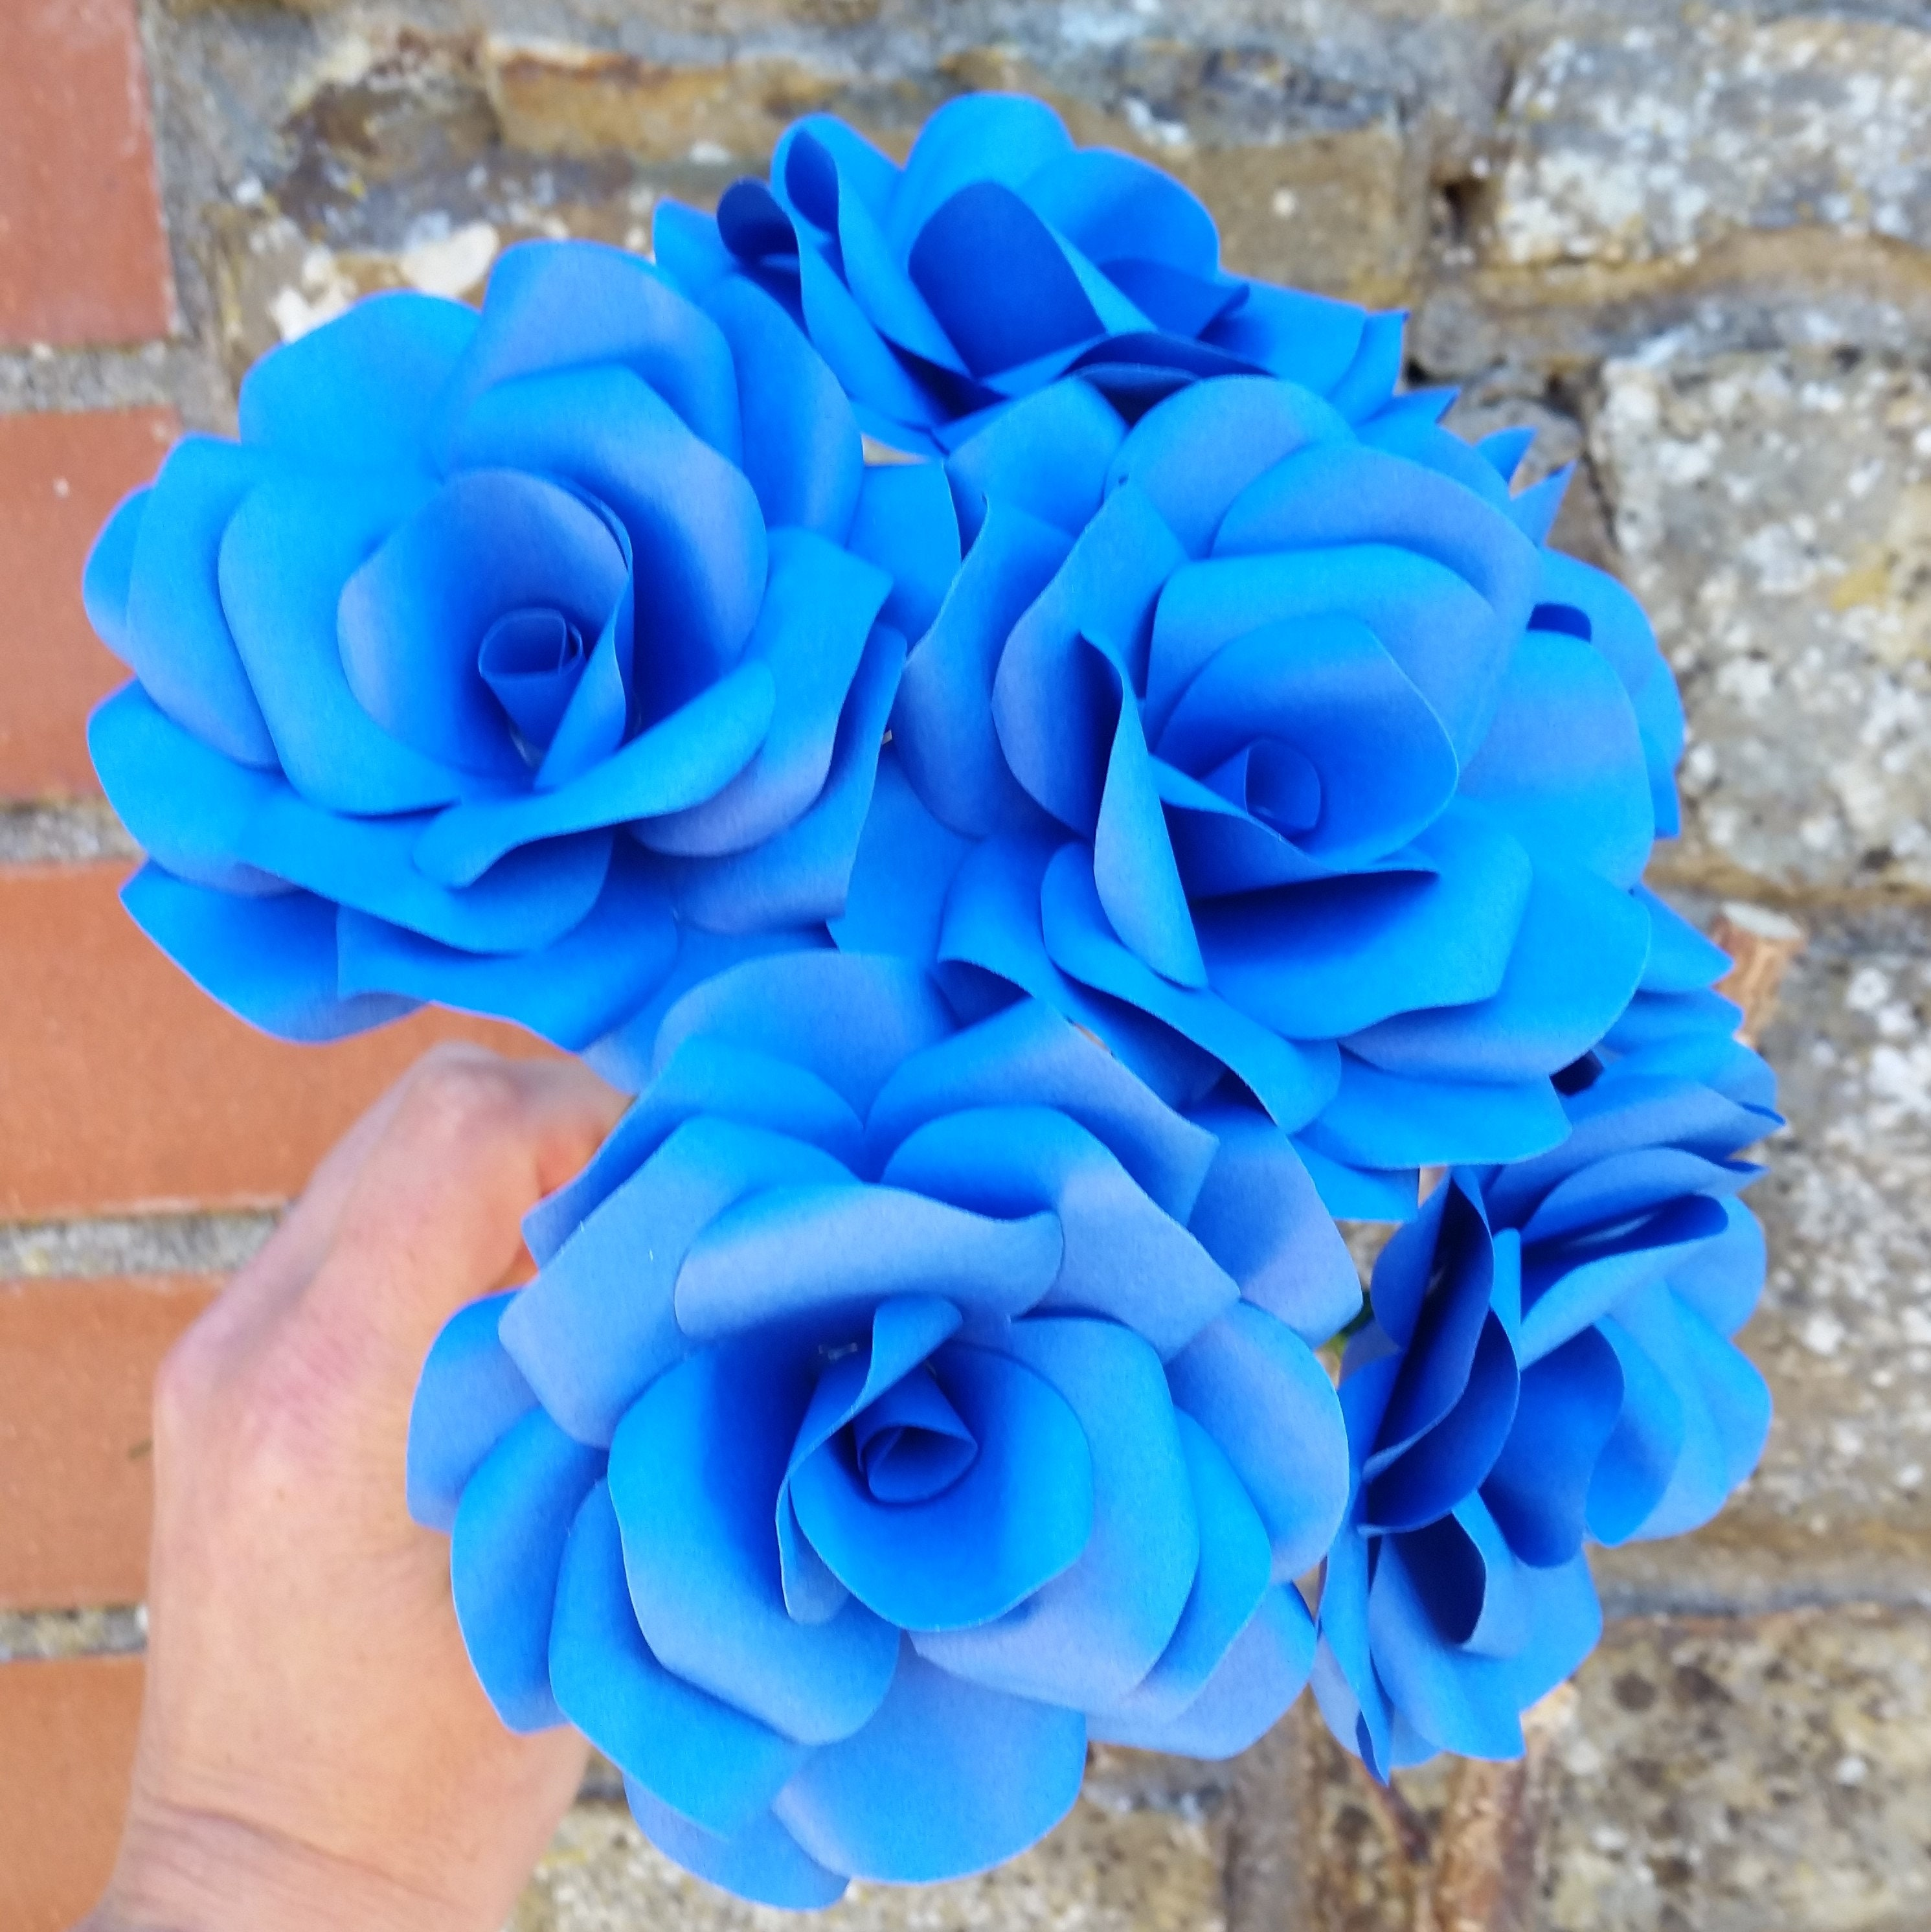 6 X Royal Blue Paper Roses Handmade Paper Flowers Forever Flowers Table Decoration Wedding Flowers Home Decor